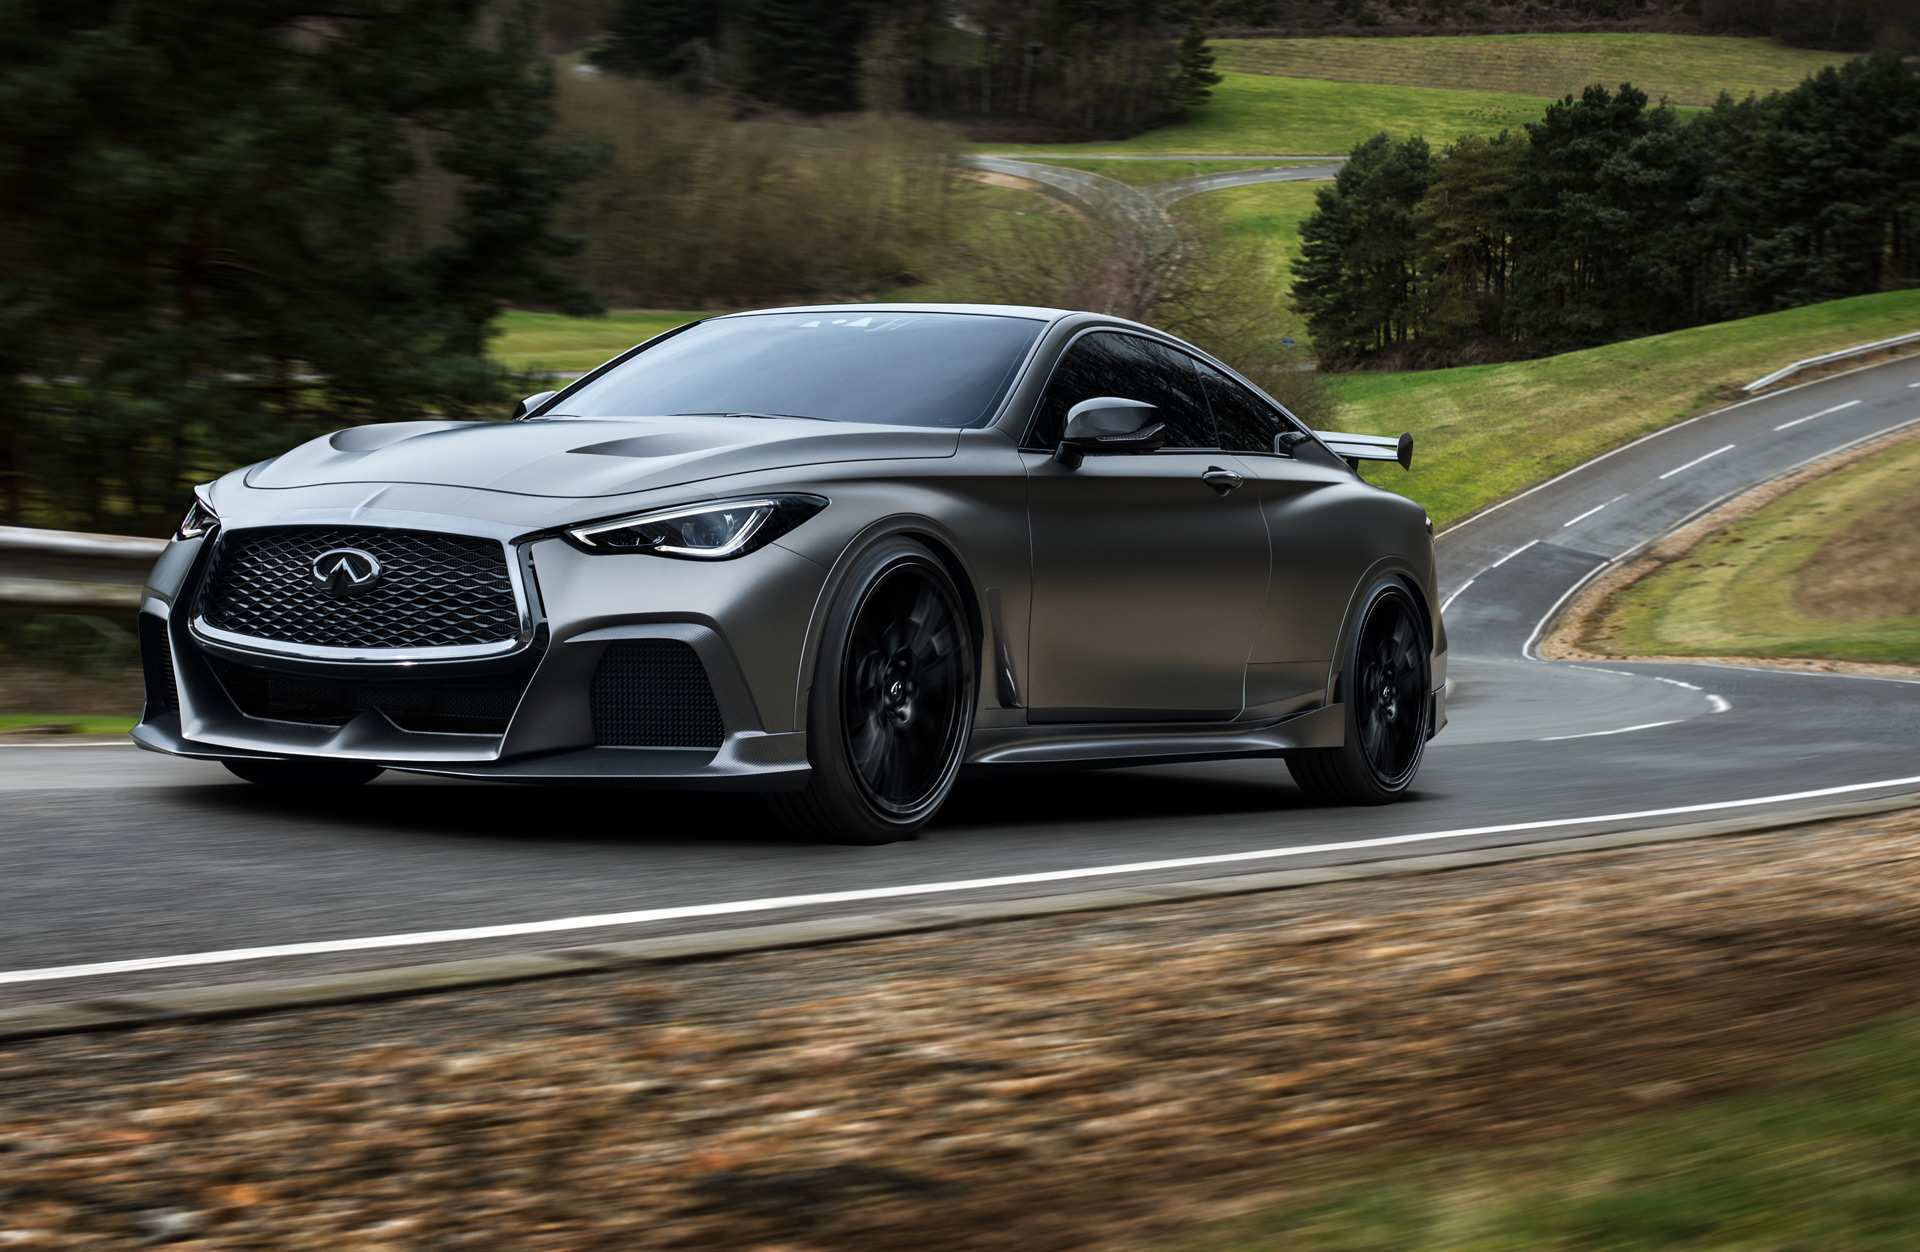 97 All New 2019 Infiniti Q60 Black S Overview